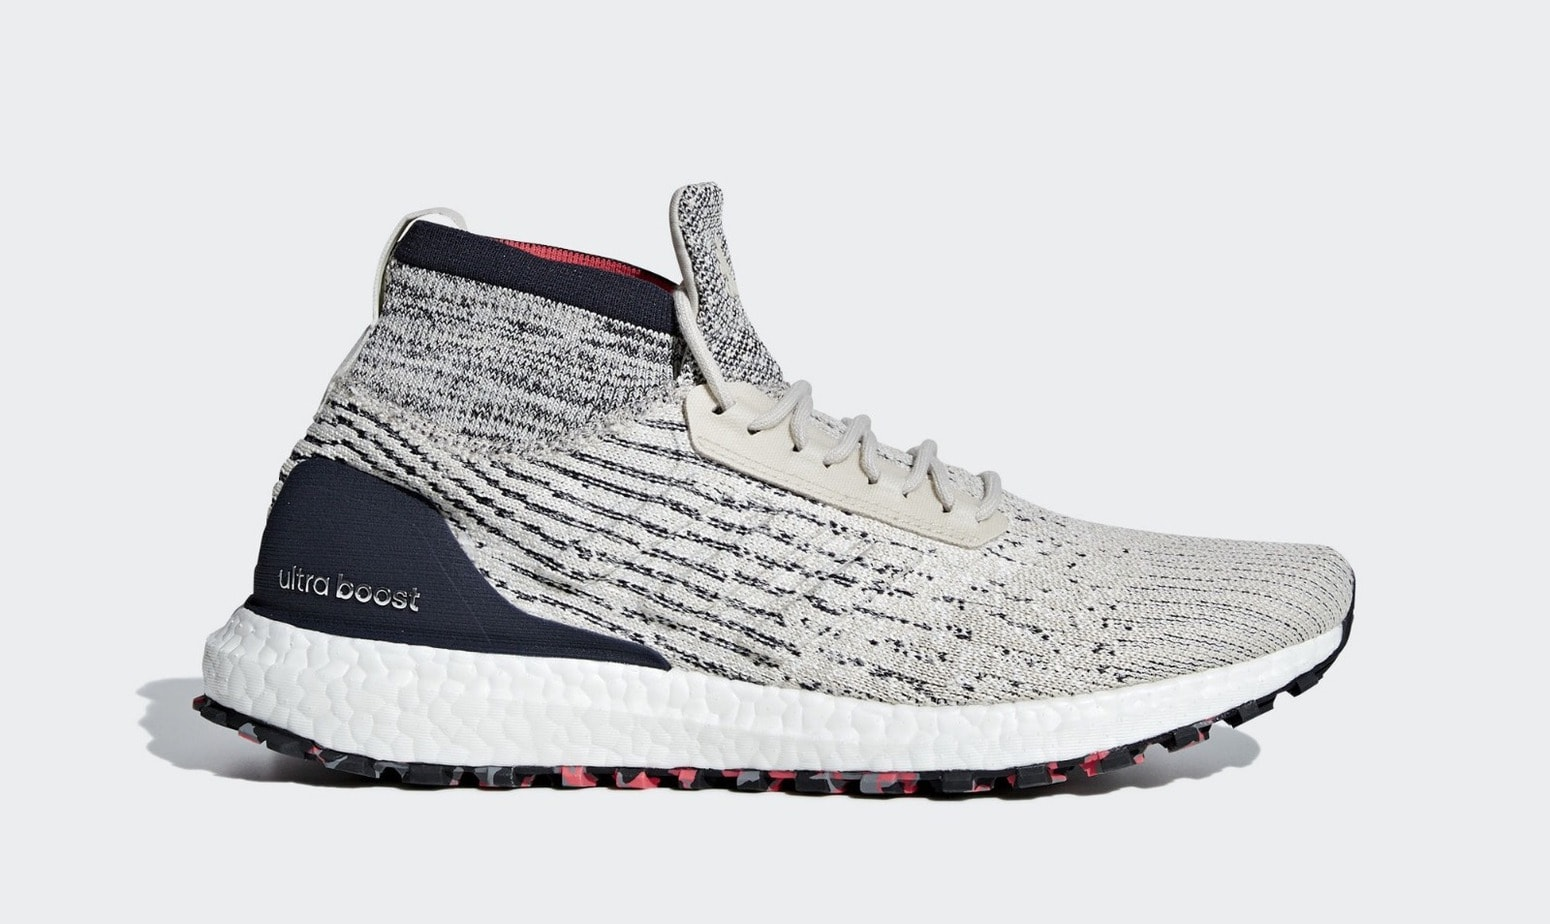 cfc407b81 The adidas Ultra Boost ATR Mid Launches With Marble Soles This Winter